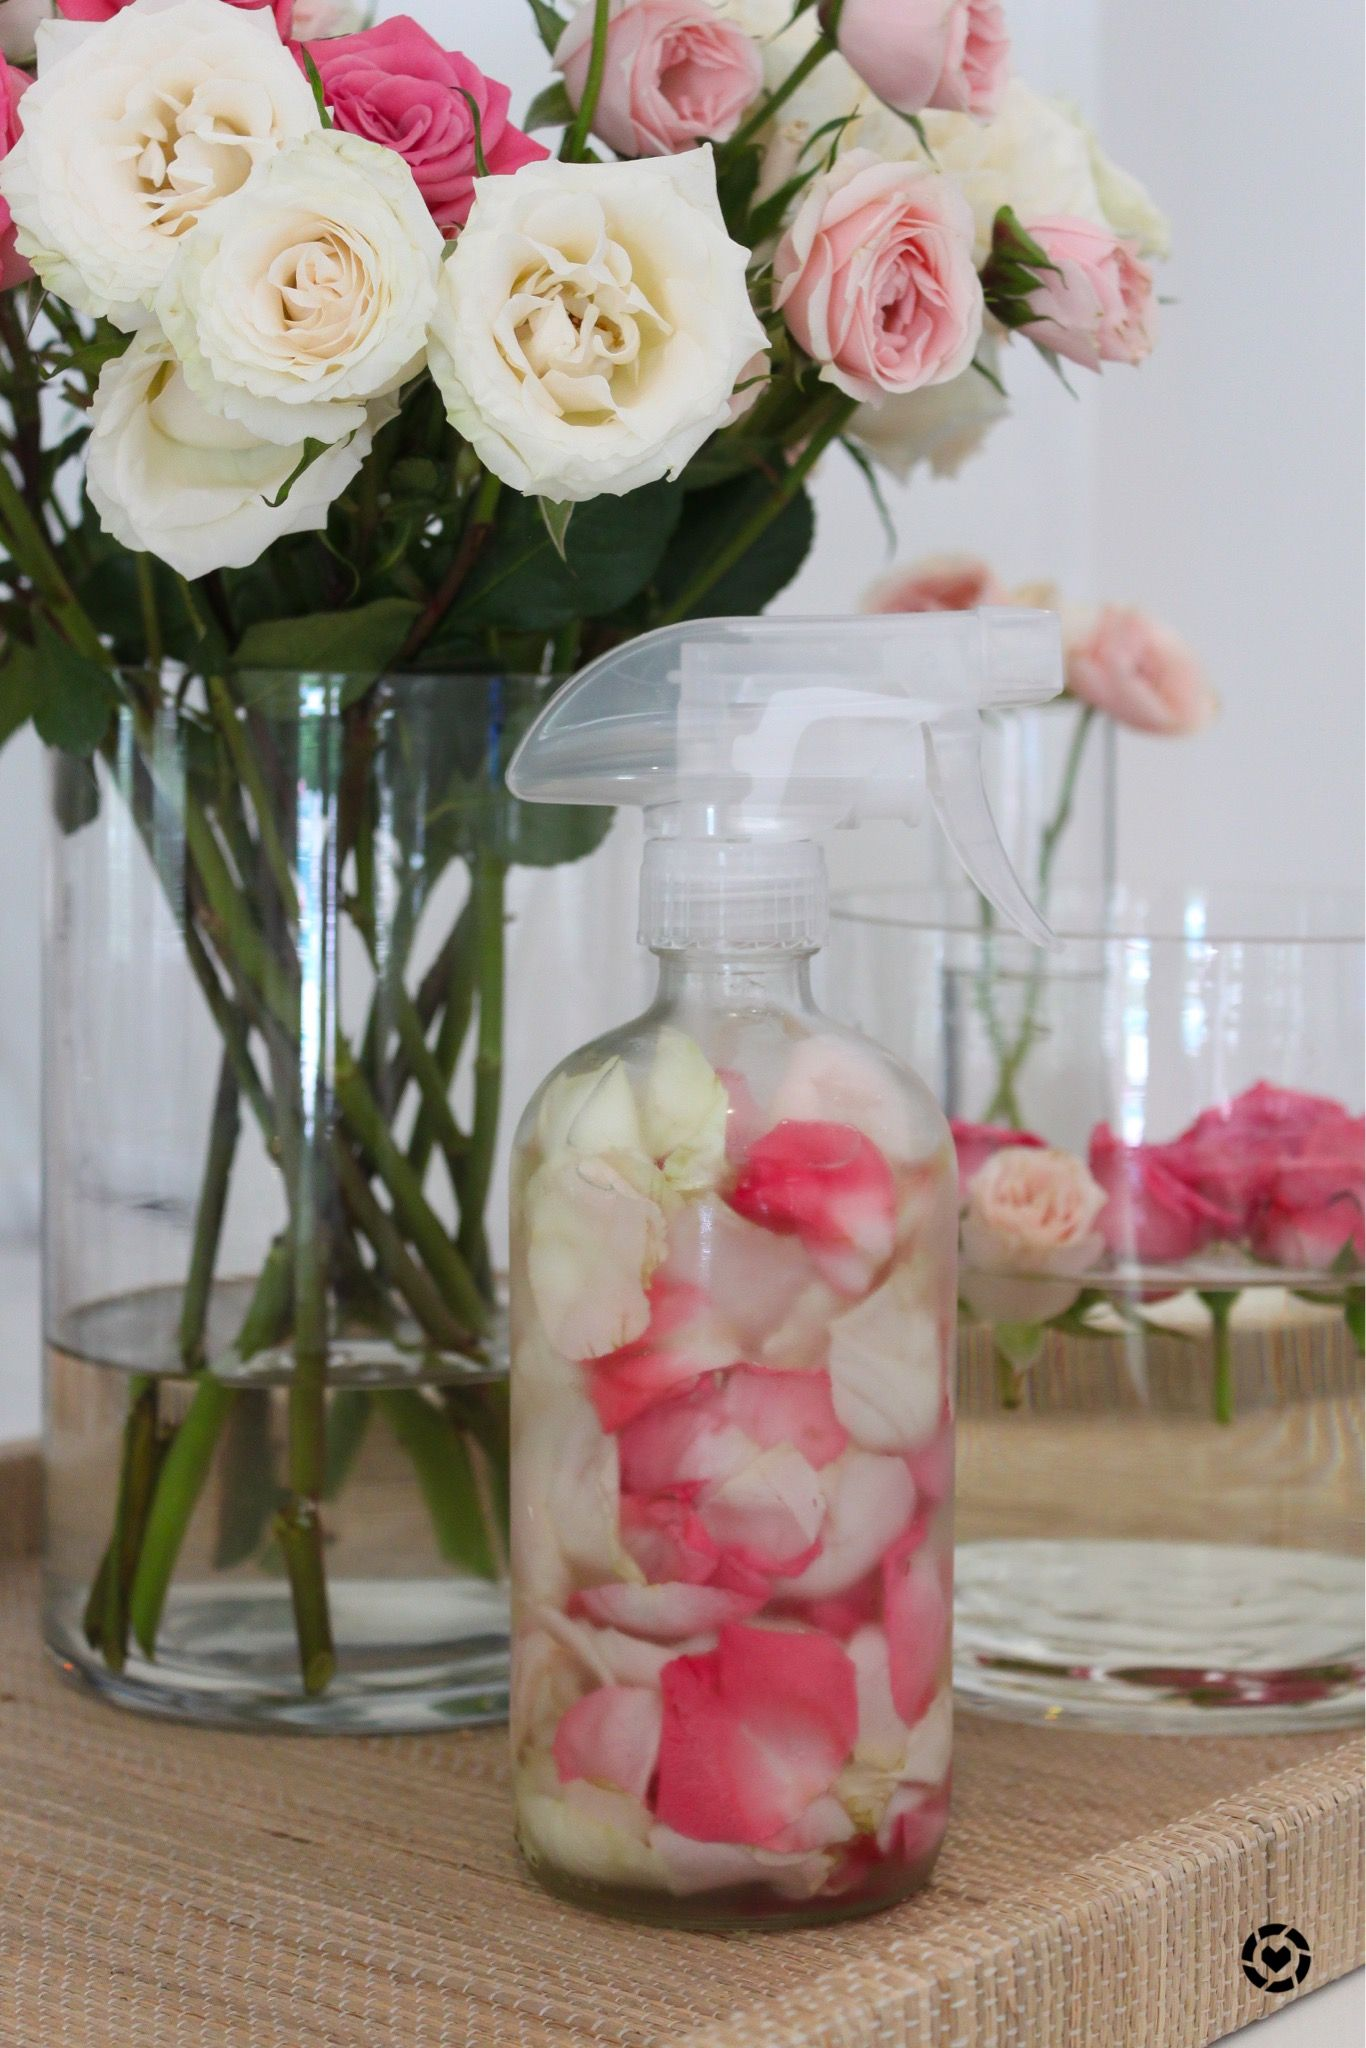 Rose Water turorial. Anti-inflammatory and anti-septic properties of rose water make this a great natural home ready thats so easy to make! Just need Roses + Water!! #diy #recipe #naturalremedies #naturalbeauty #naturalbeautyproducts #naturalbeautytips #organicbeauty #organicskincare #organicproducts #rosewatertoner #athomebeauty